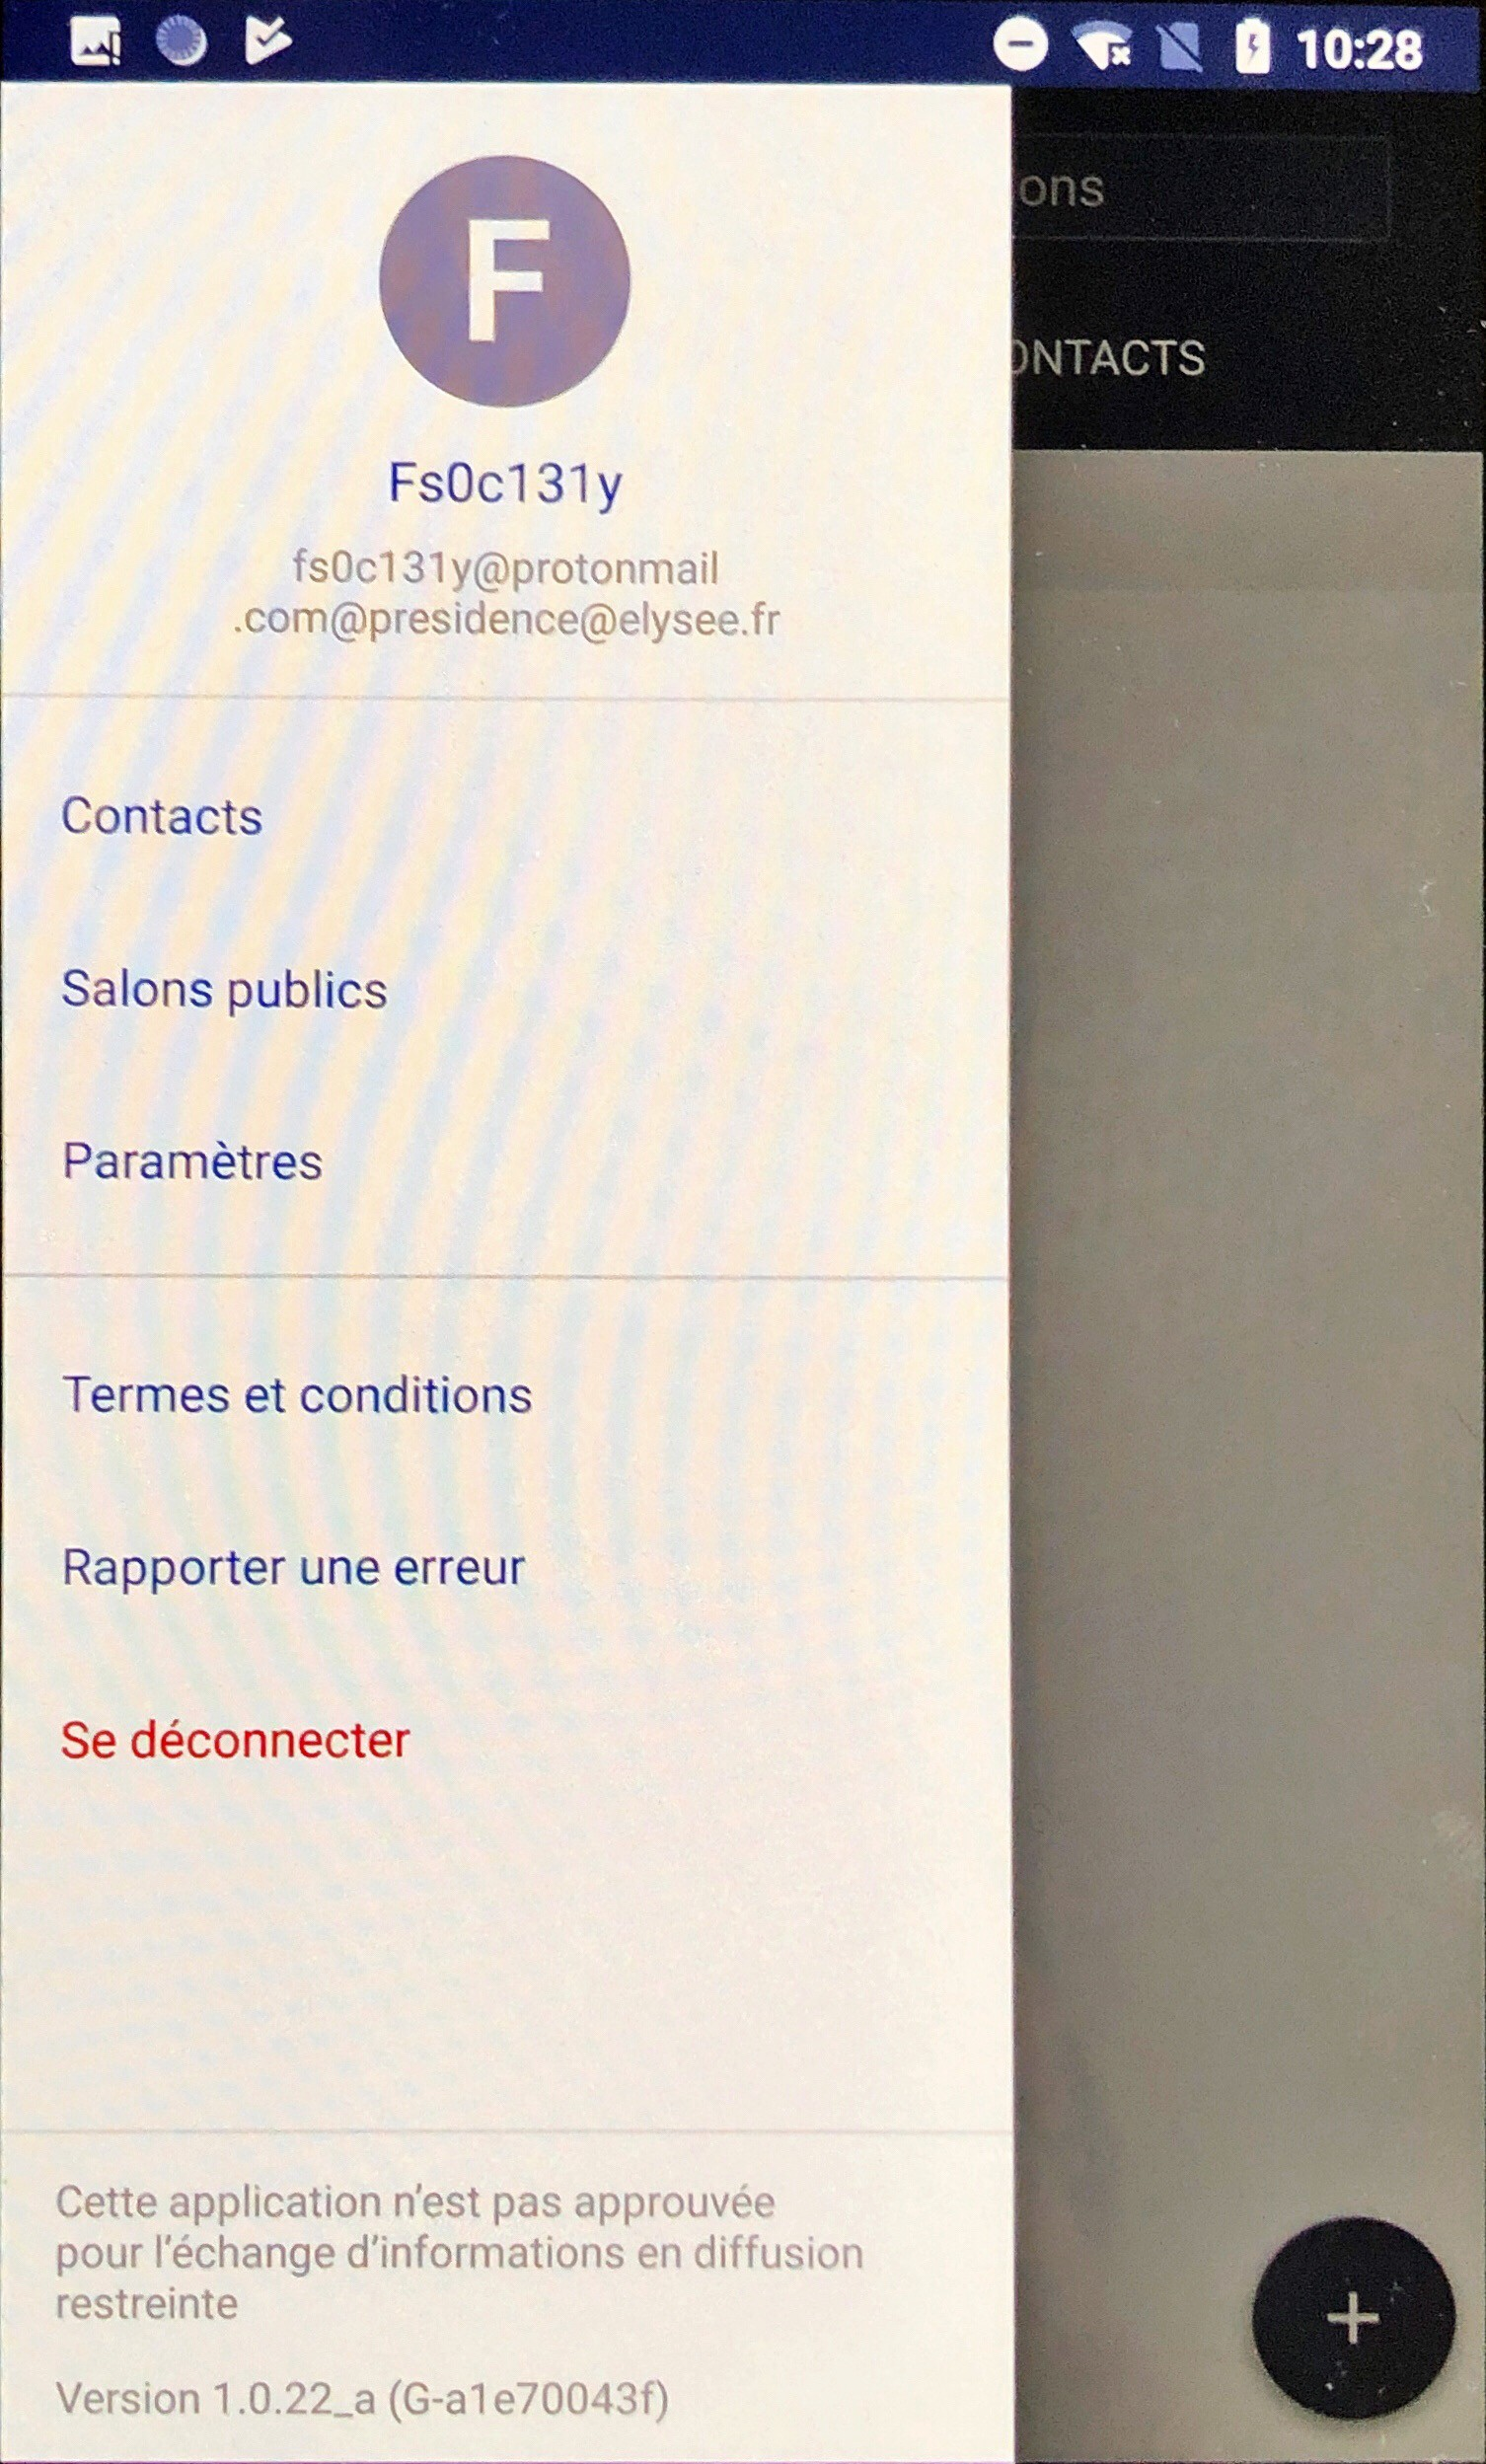 Tchap: The super (not) secure app of the French government